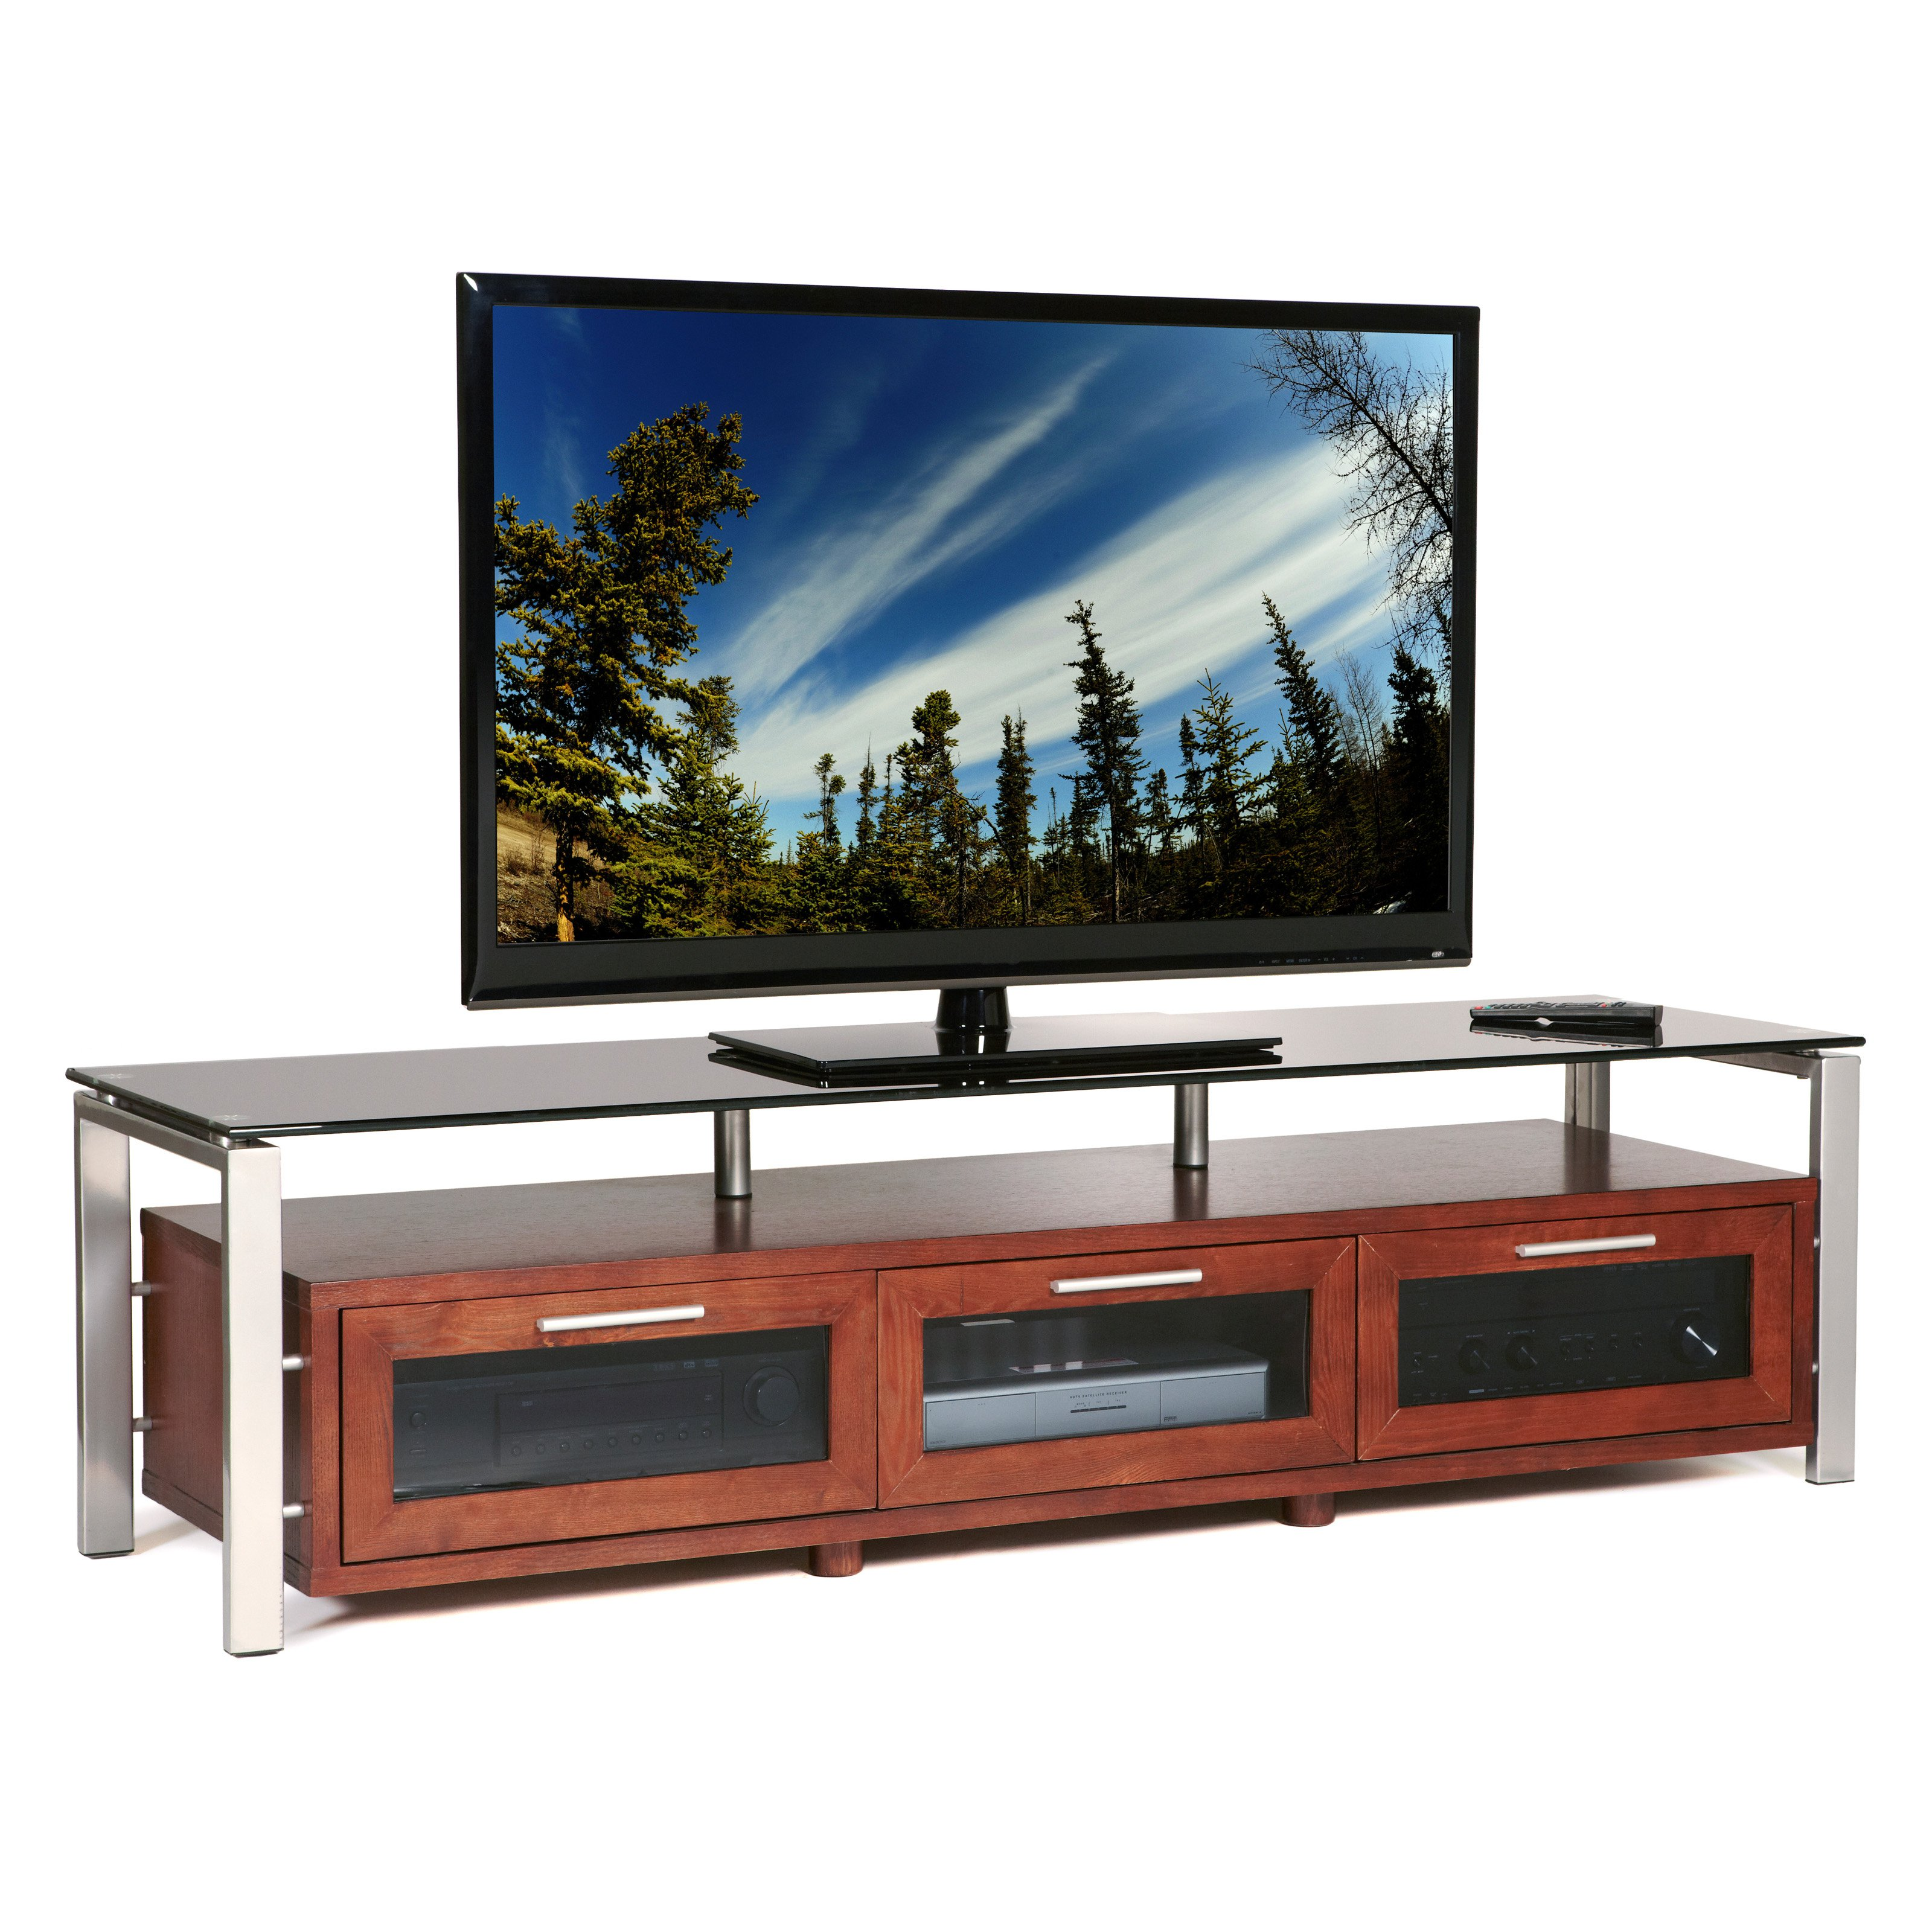 Plateau Decor 71 Inch TV Stand in Walnut/Black and Silver